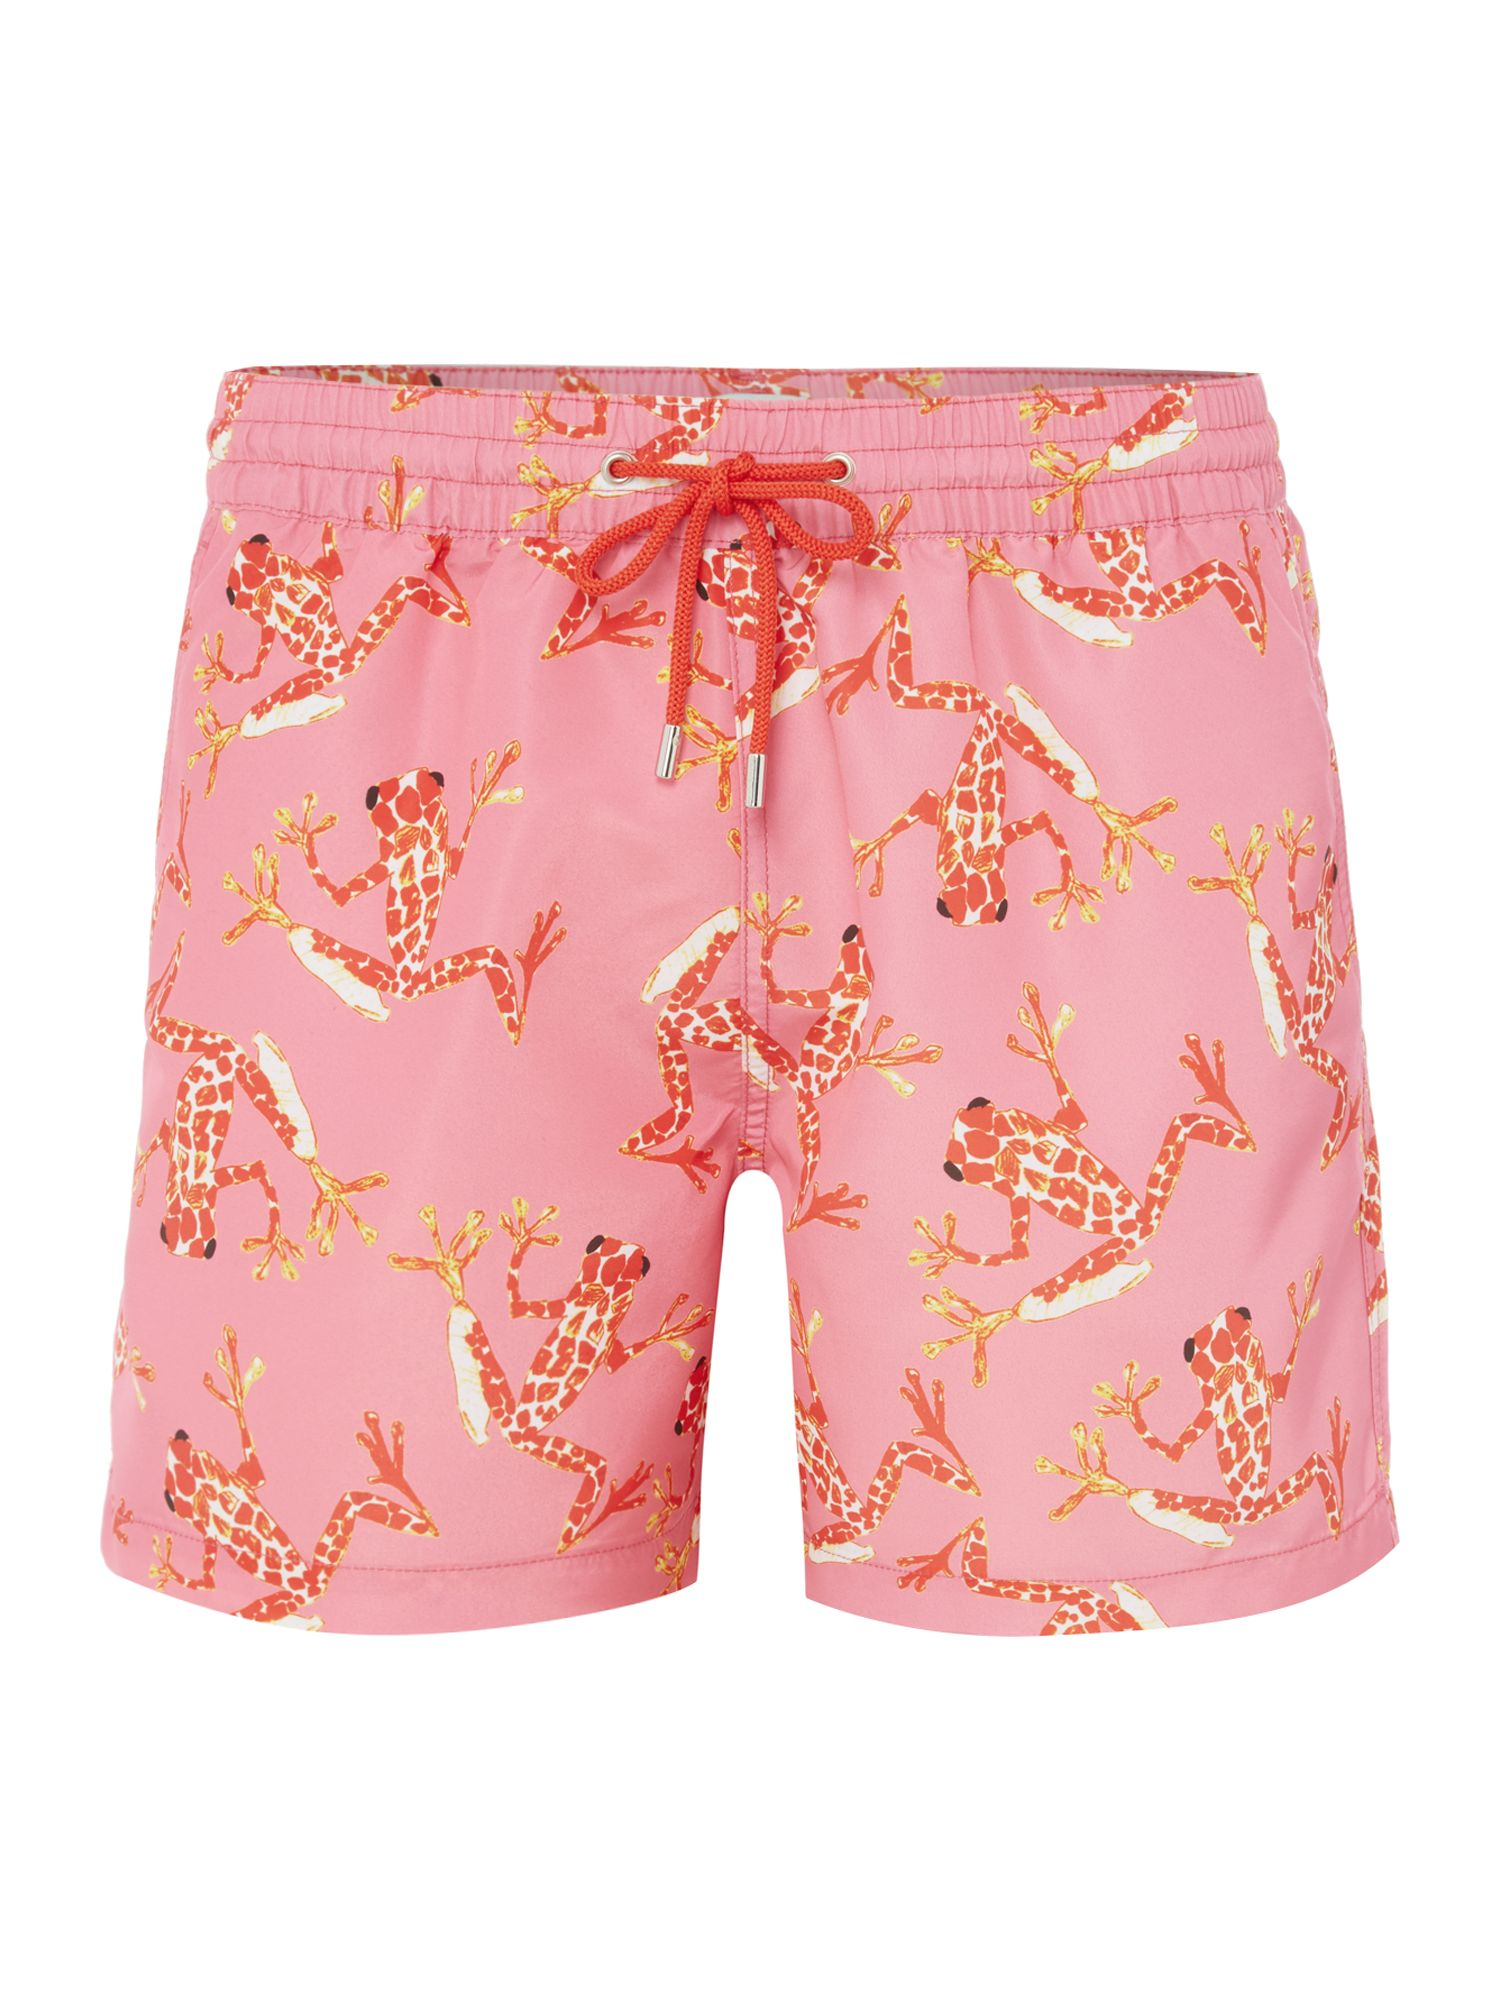 Men's Paul Smith Bright Frog Print Swim Short, Pink